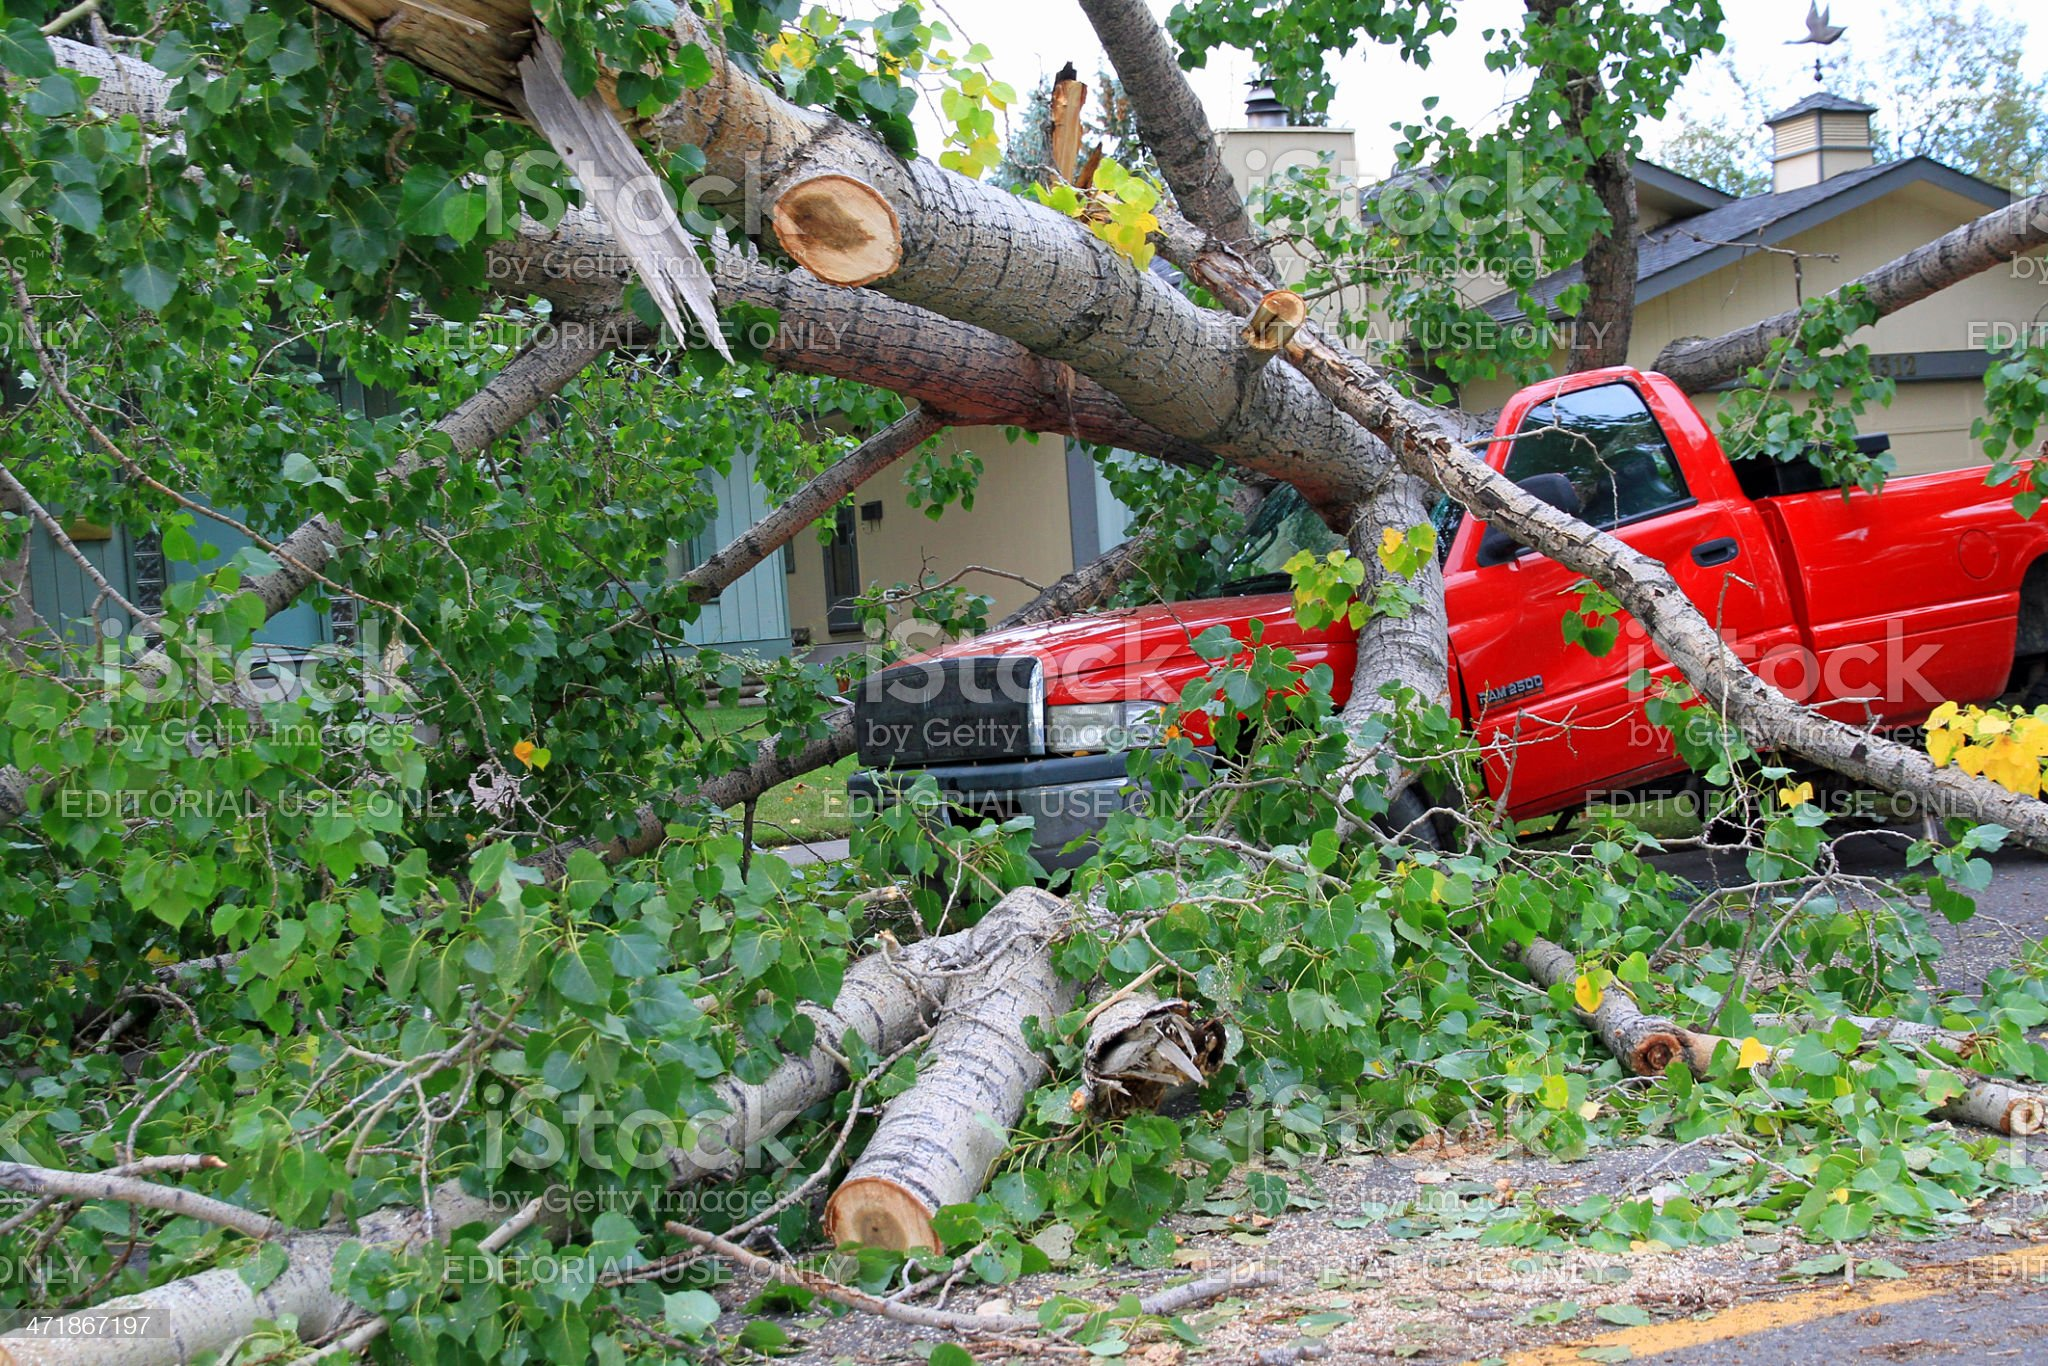 Windstorm causes Tree to fall on a Truck royalty-free stock photo